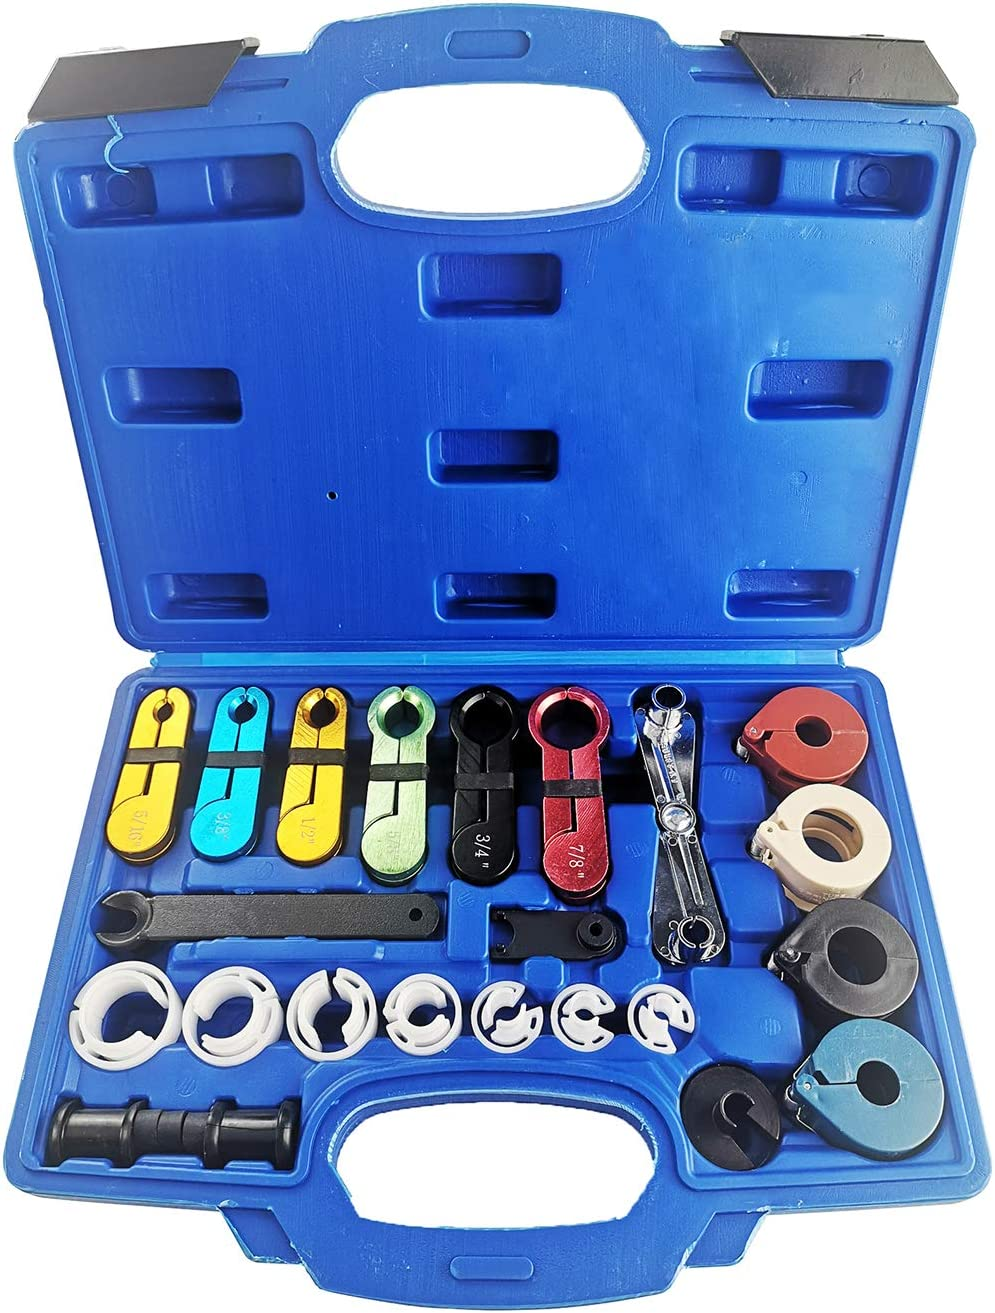 A ABIGAIL 22 PCS Master Quick Disconnect Tool Kit for Fuel Line Automotive Air Conditioner and Transmission Oil Cooler Line